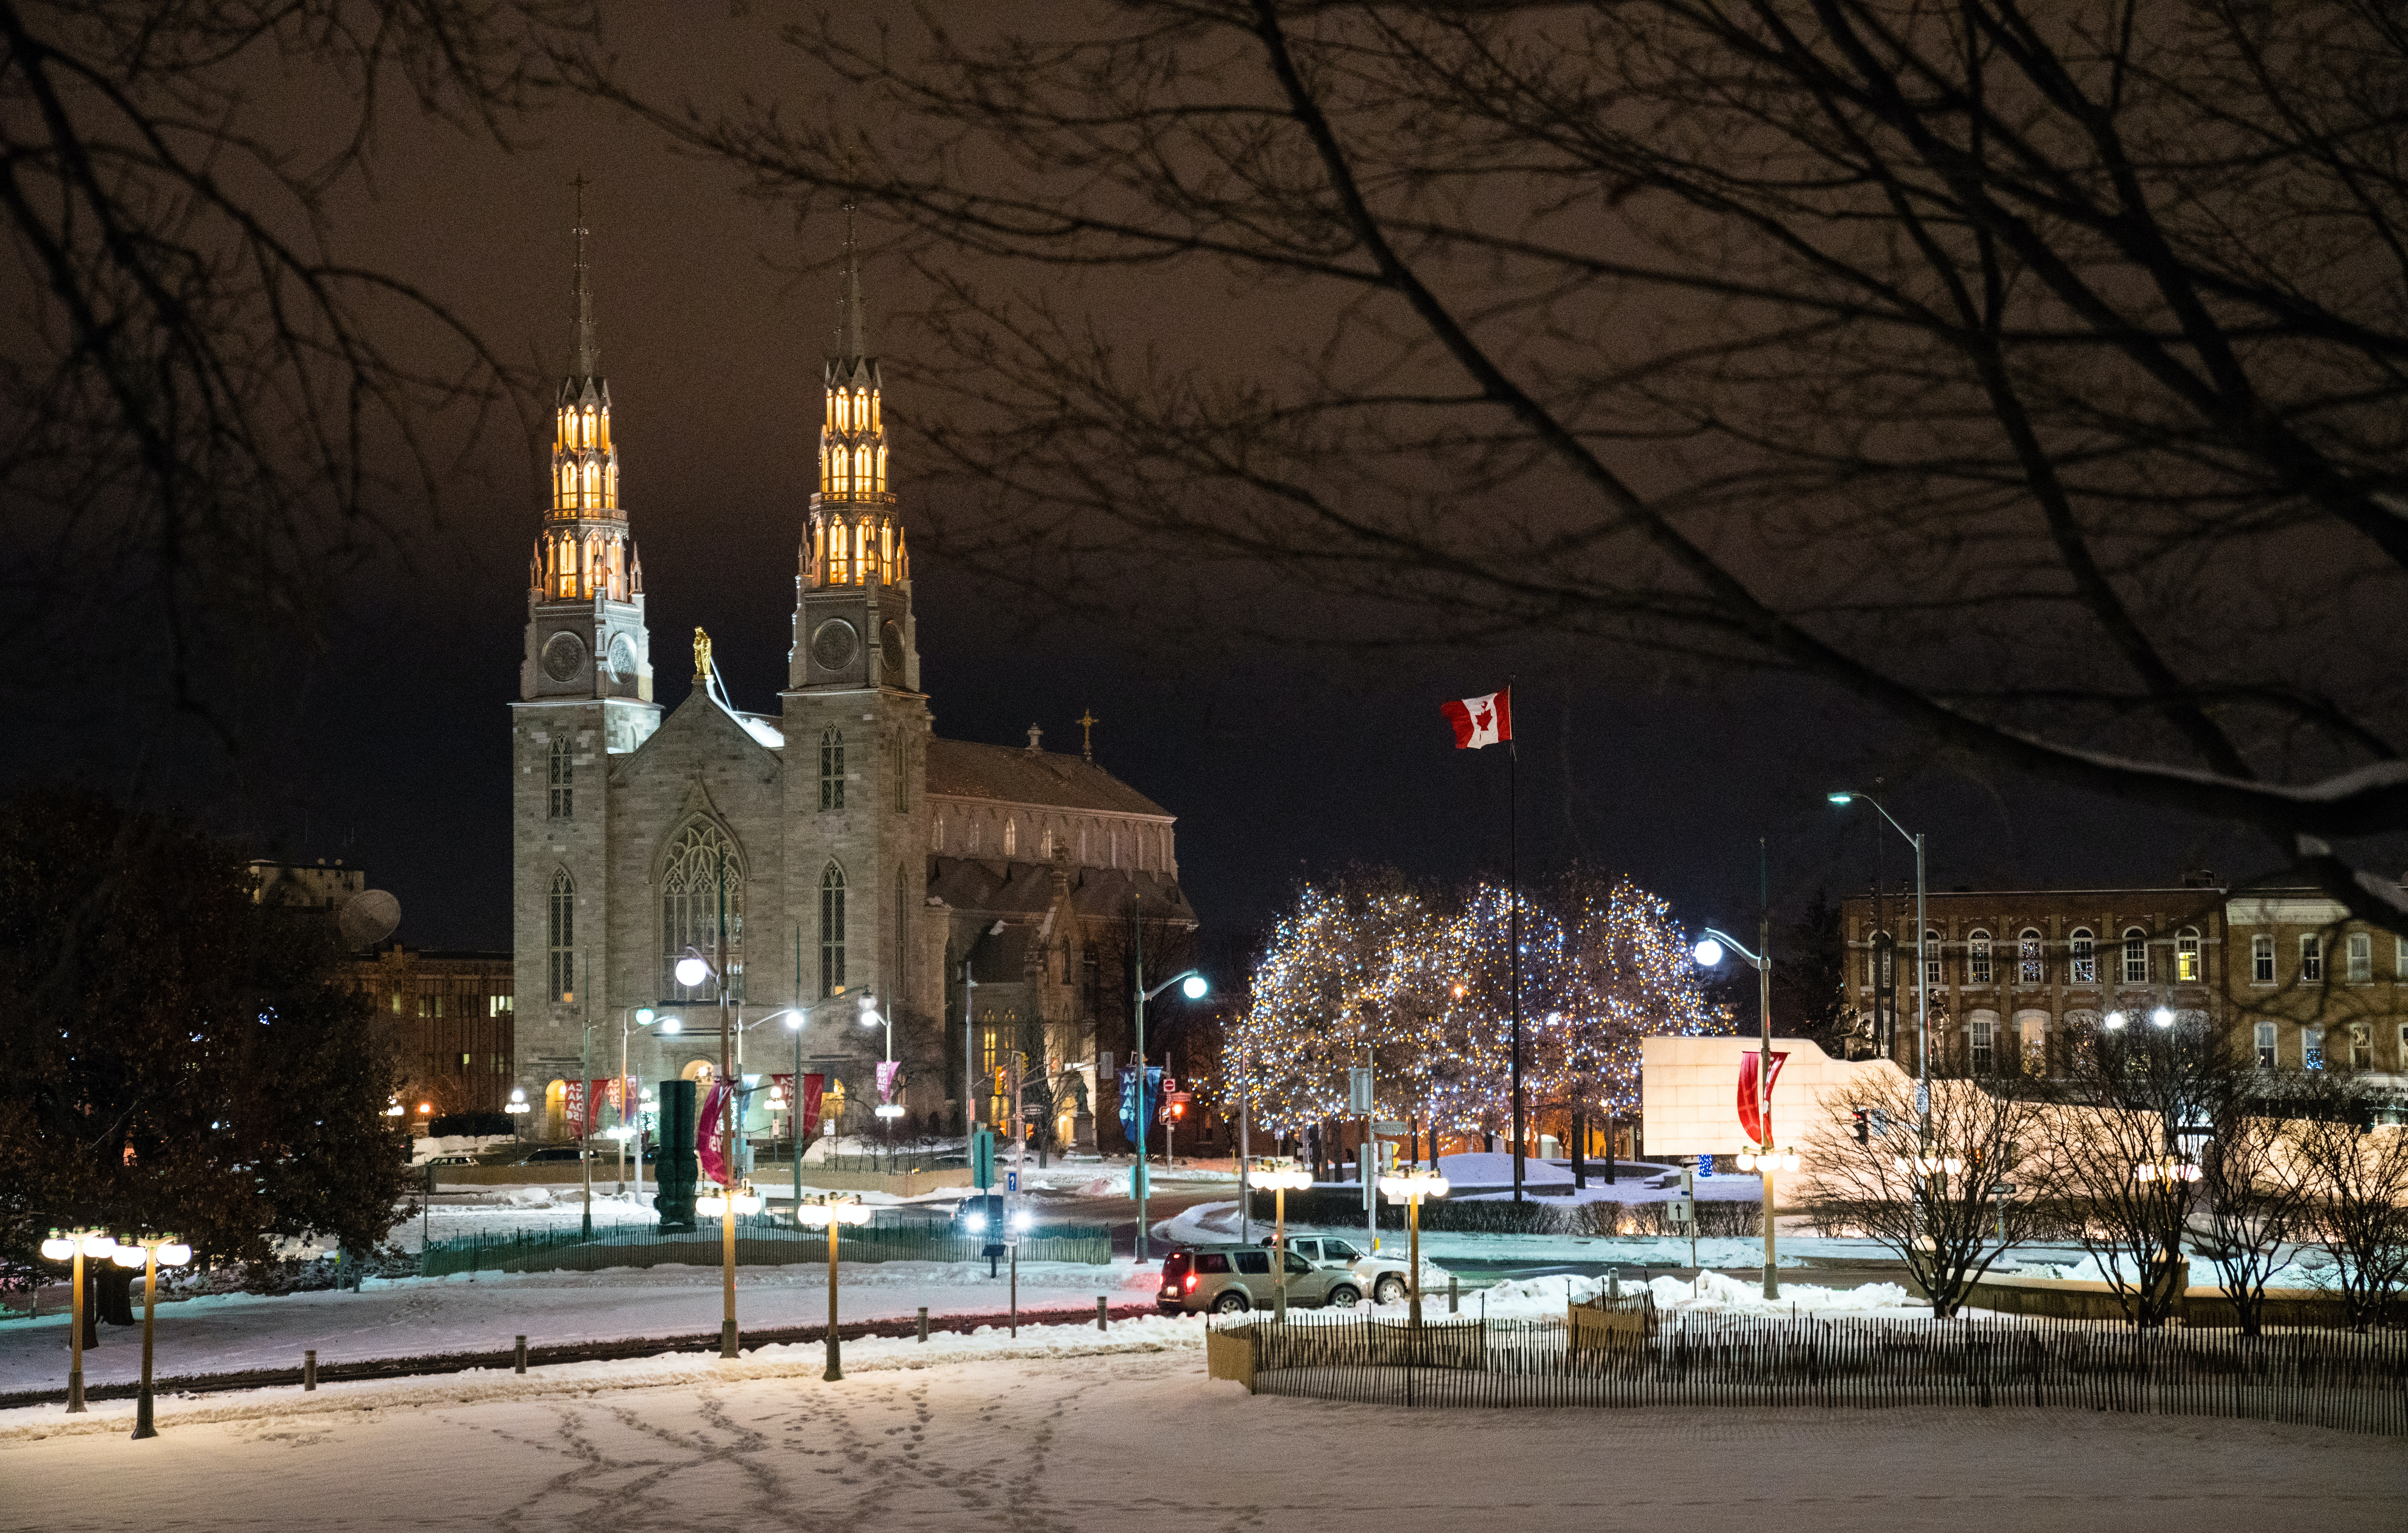 night phpto of the city of Ottawa during the winter